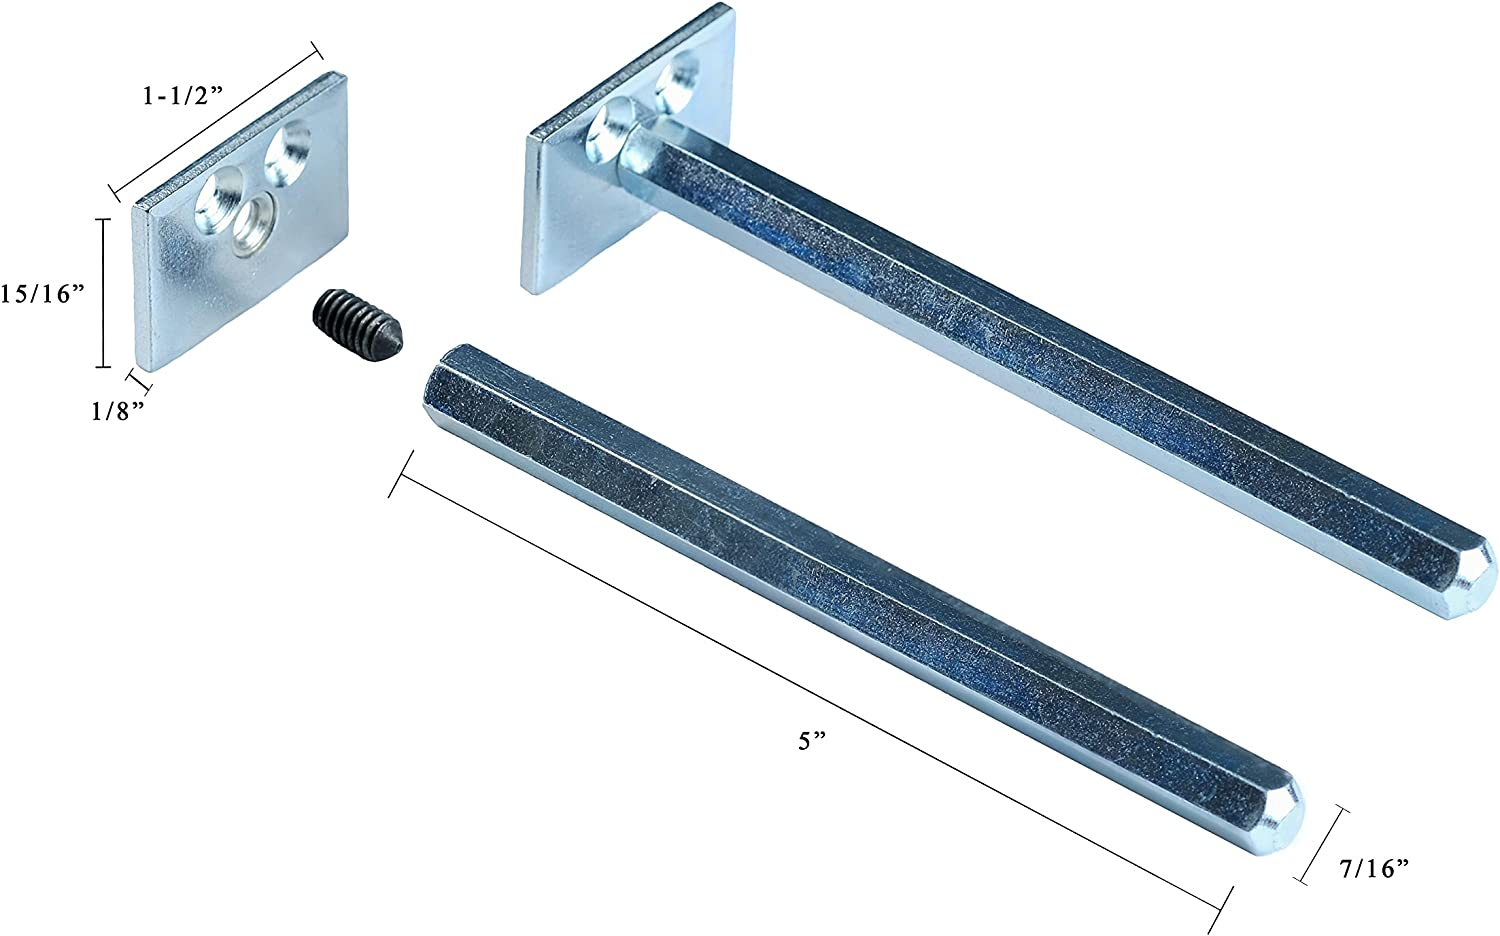 Floating Shelf Brackets - Completely Concealable Hardware Kit for Wood Shelves - Easily Mount Shelves Flush to Wall - Perfect for DIY or Custom Shelving - Blind Supports - Steel